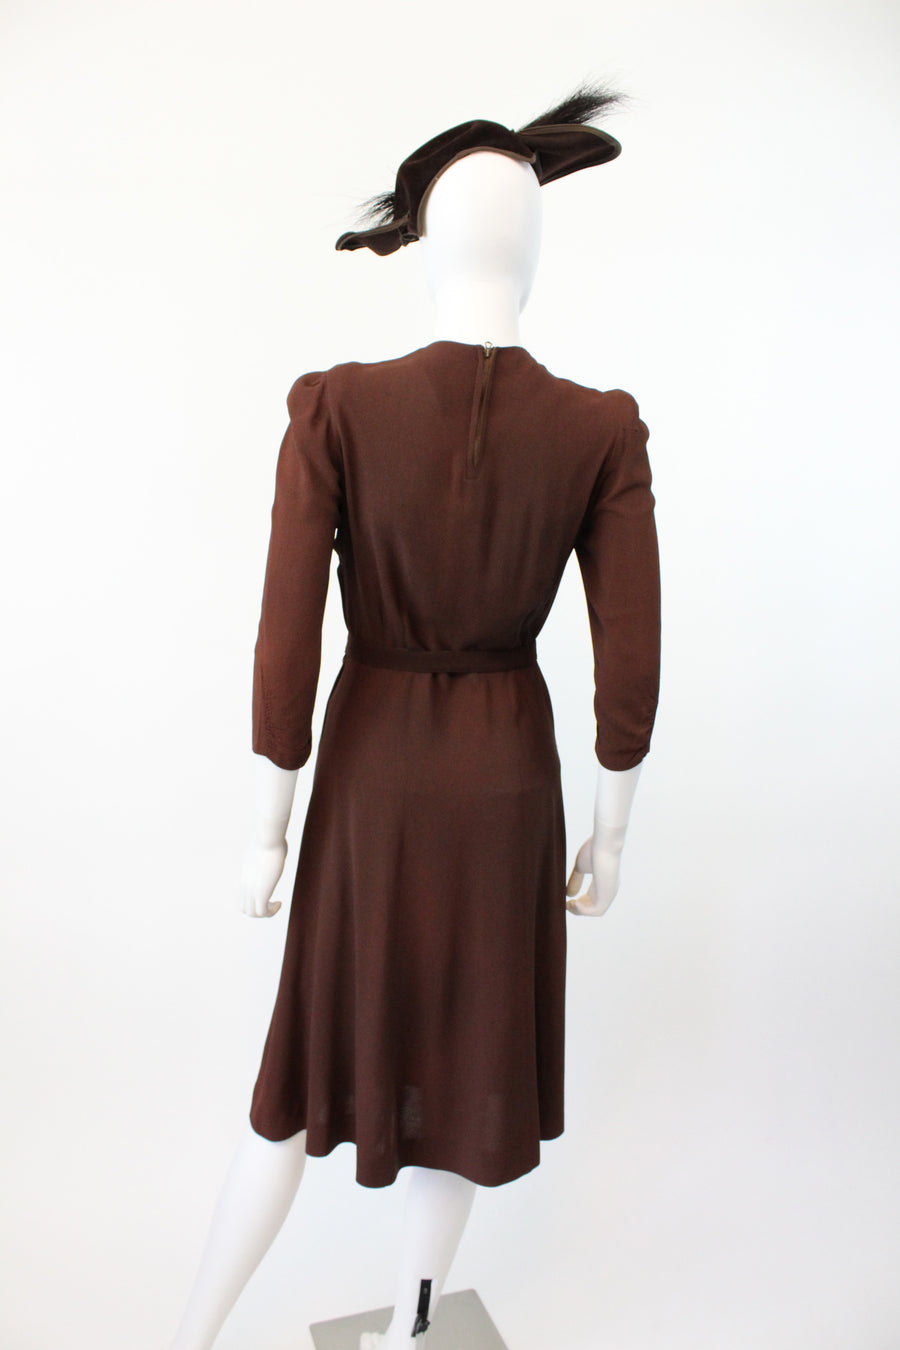 1930s 1940s two tone rayon dress small | vintage soutache dress | new fall